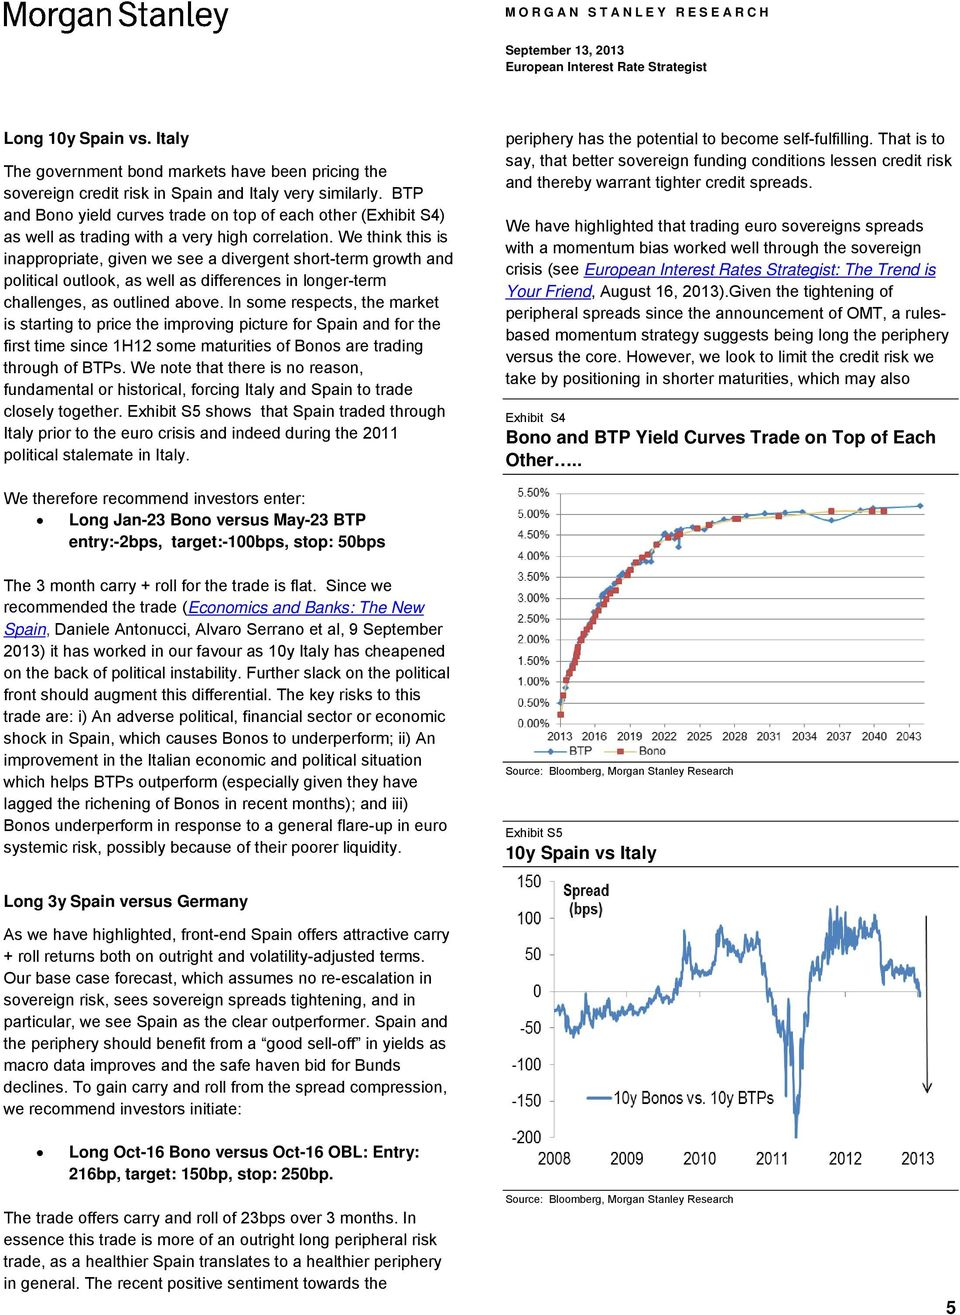 We think this is inappropriate, given we see a divergent short-term growth and political outlook, as well as differences in longer-term challenges, as outlined above.